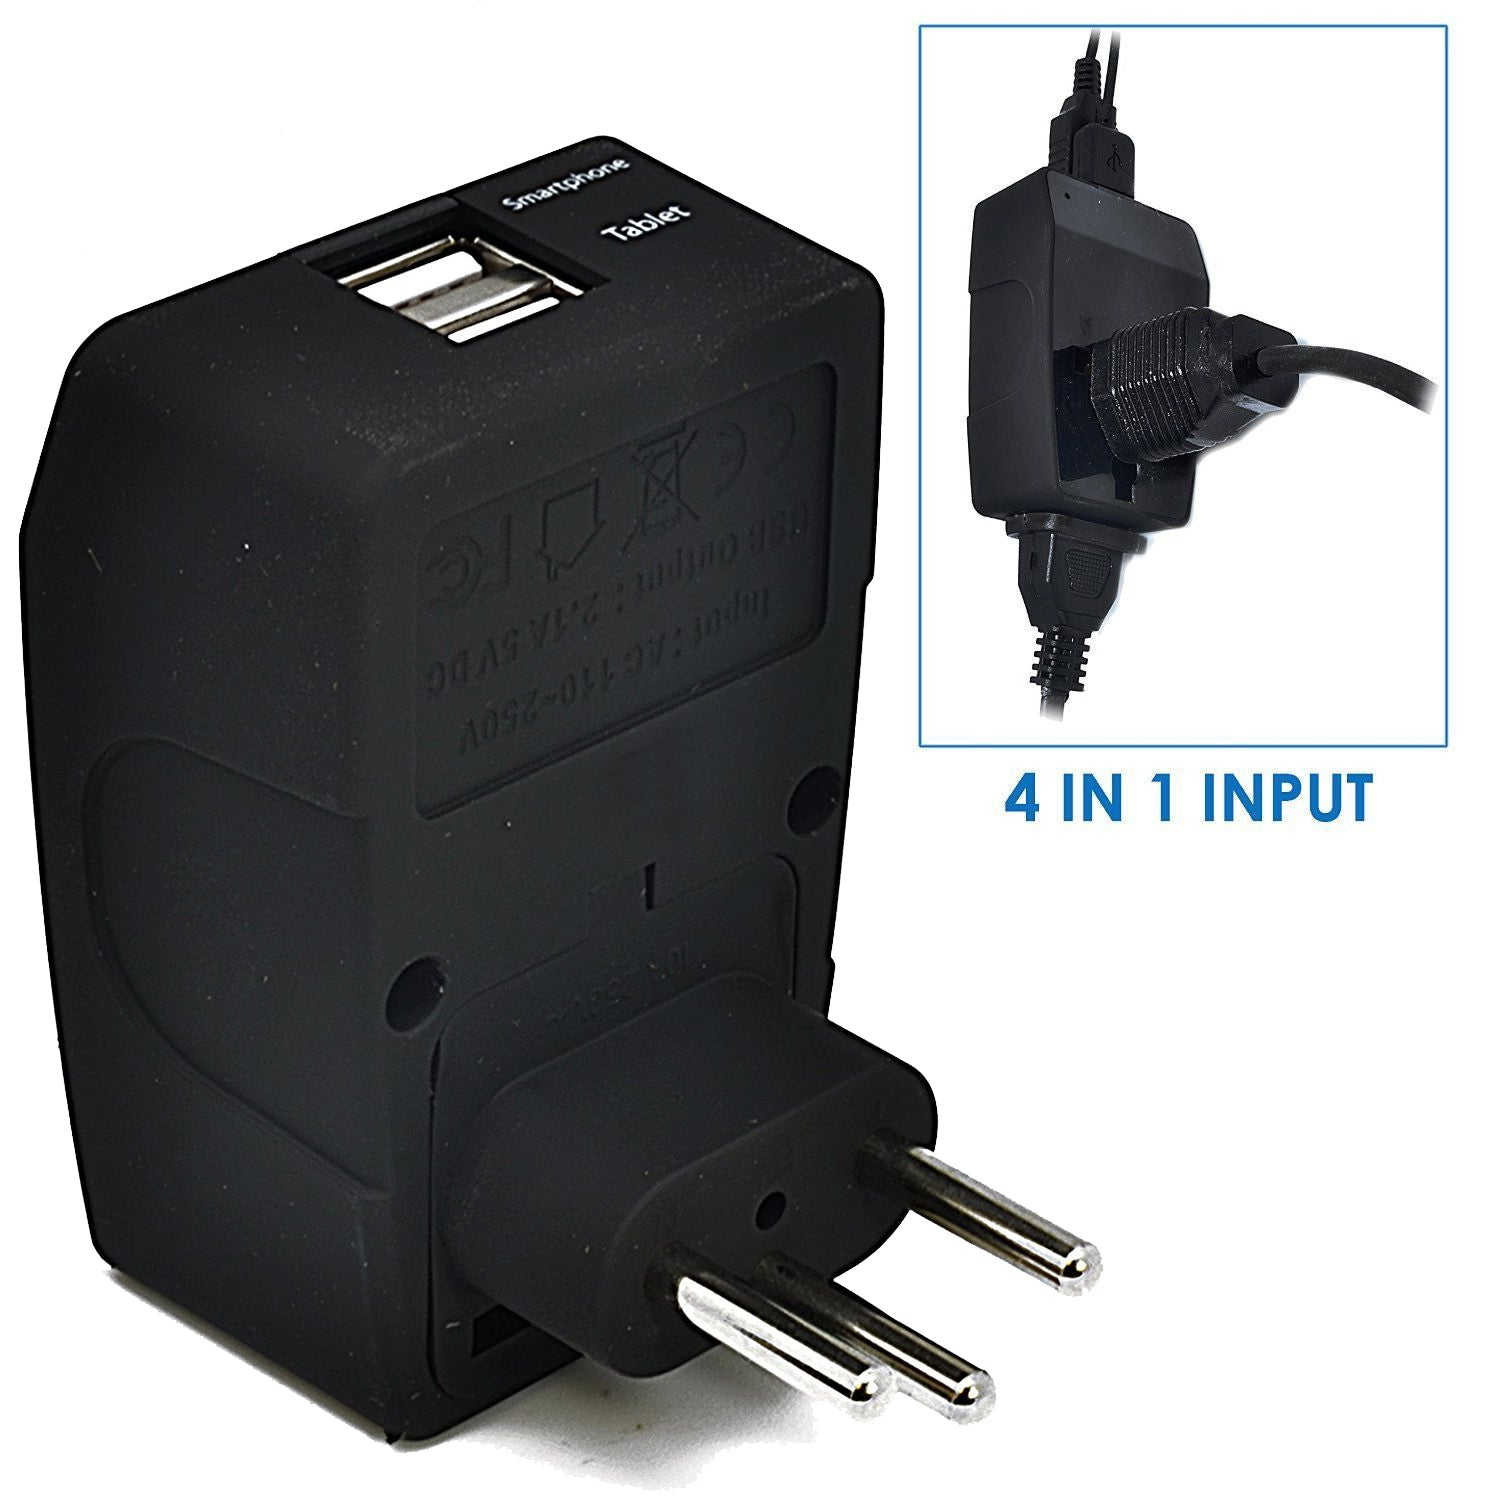 Swiss Suisse CH Adapter Plug Voyage Type J a EU Europe European Type C E F Prise Socket Adaptor pour Spain ES France FR Germany Portugal Denmark Greece Turkey Adaptateur Universel International 3 Pin